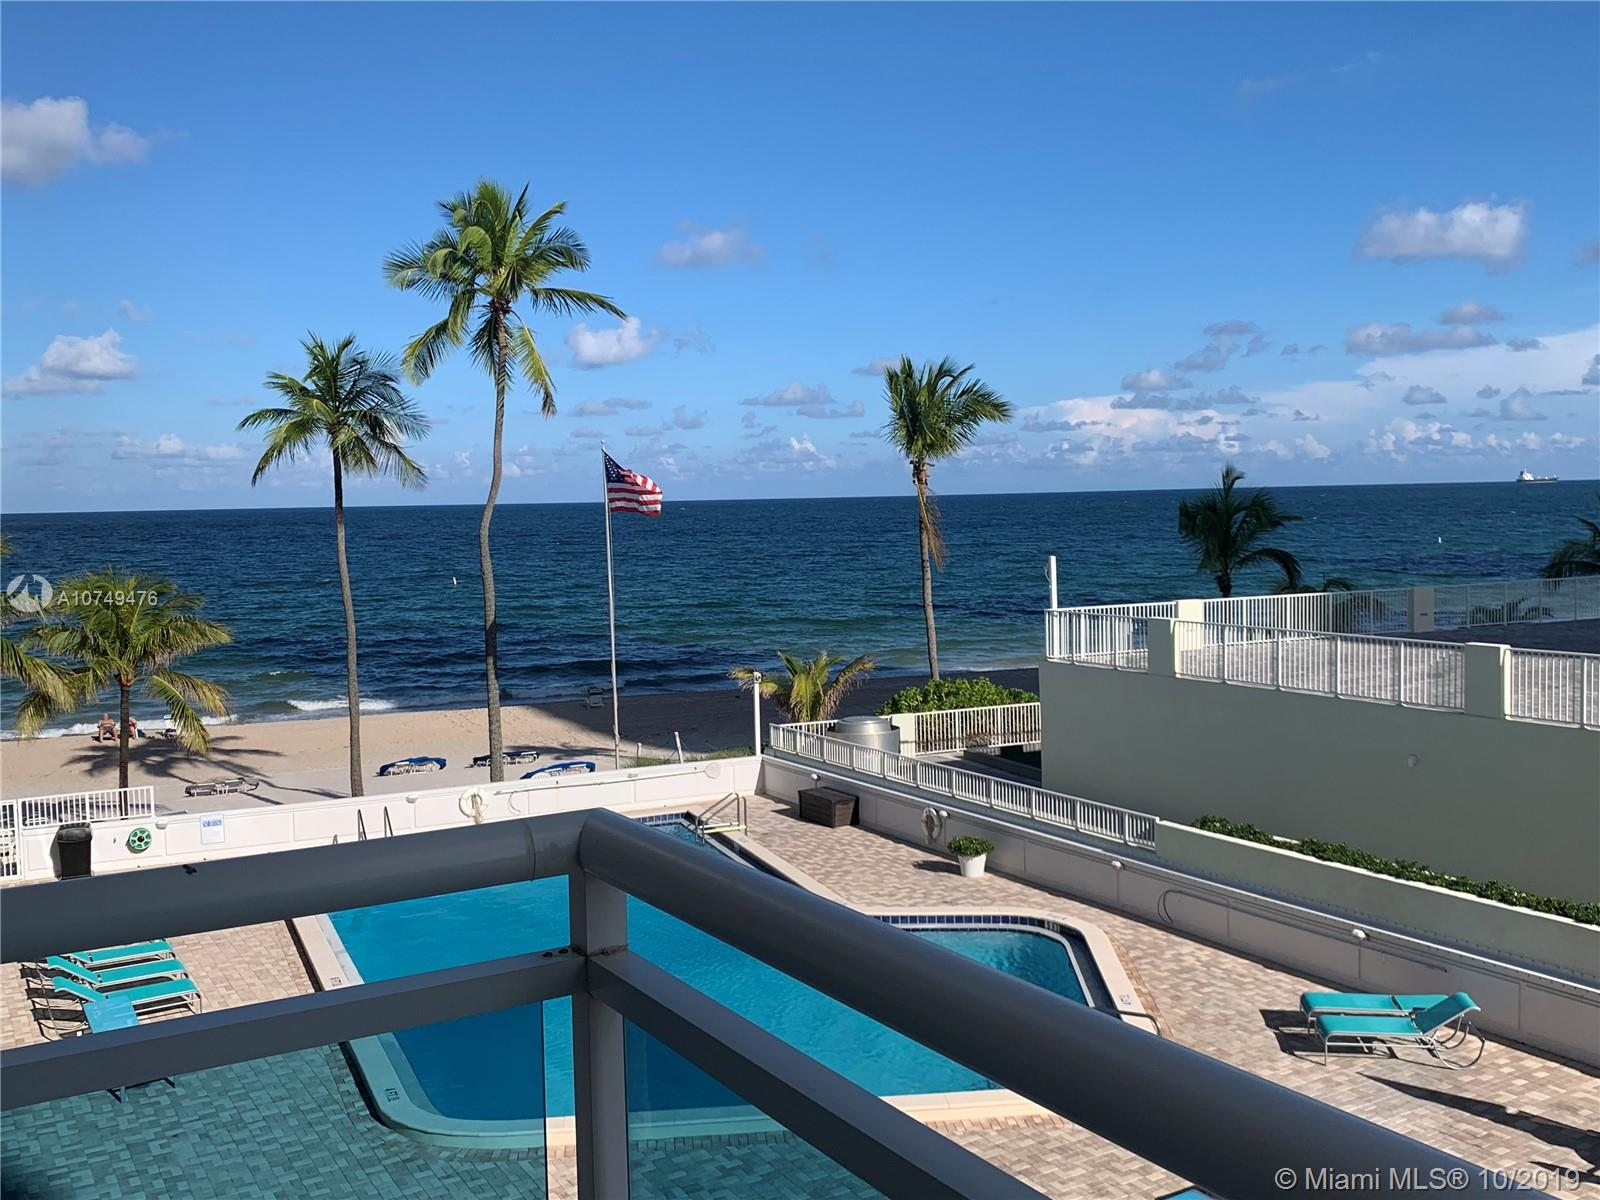 Live Directly on the Beach in prestigious Galt Ocean Mile! Step out to the balcony and enjoy direct ocean views! The building features private beach access with cabanas, updated pool overlooking the ocean, gym, clubhouse/ party room with piano, outside deck area, on-site management and more. The Commodore is conveniently located near shops, restaurants, and the Galleria Mall is just ten minutes away!